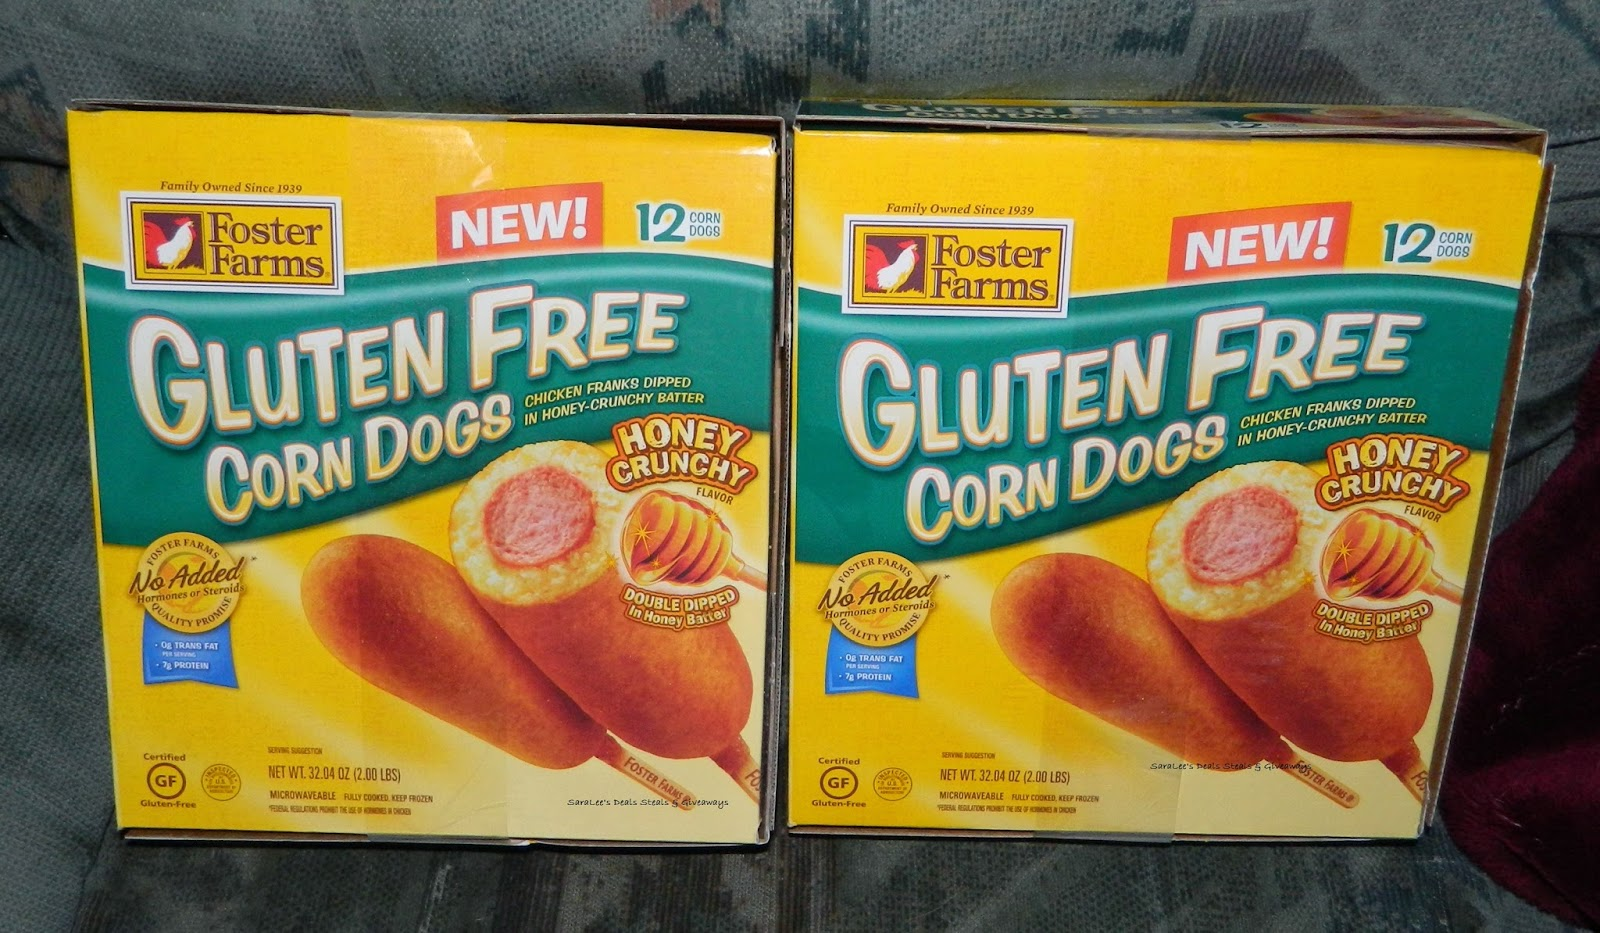 Enter the Foster Farms Gluten Free Corn Dogs Giveaway. Ends 11/17.